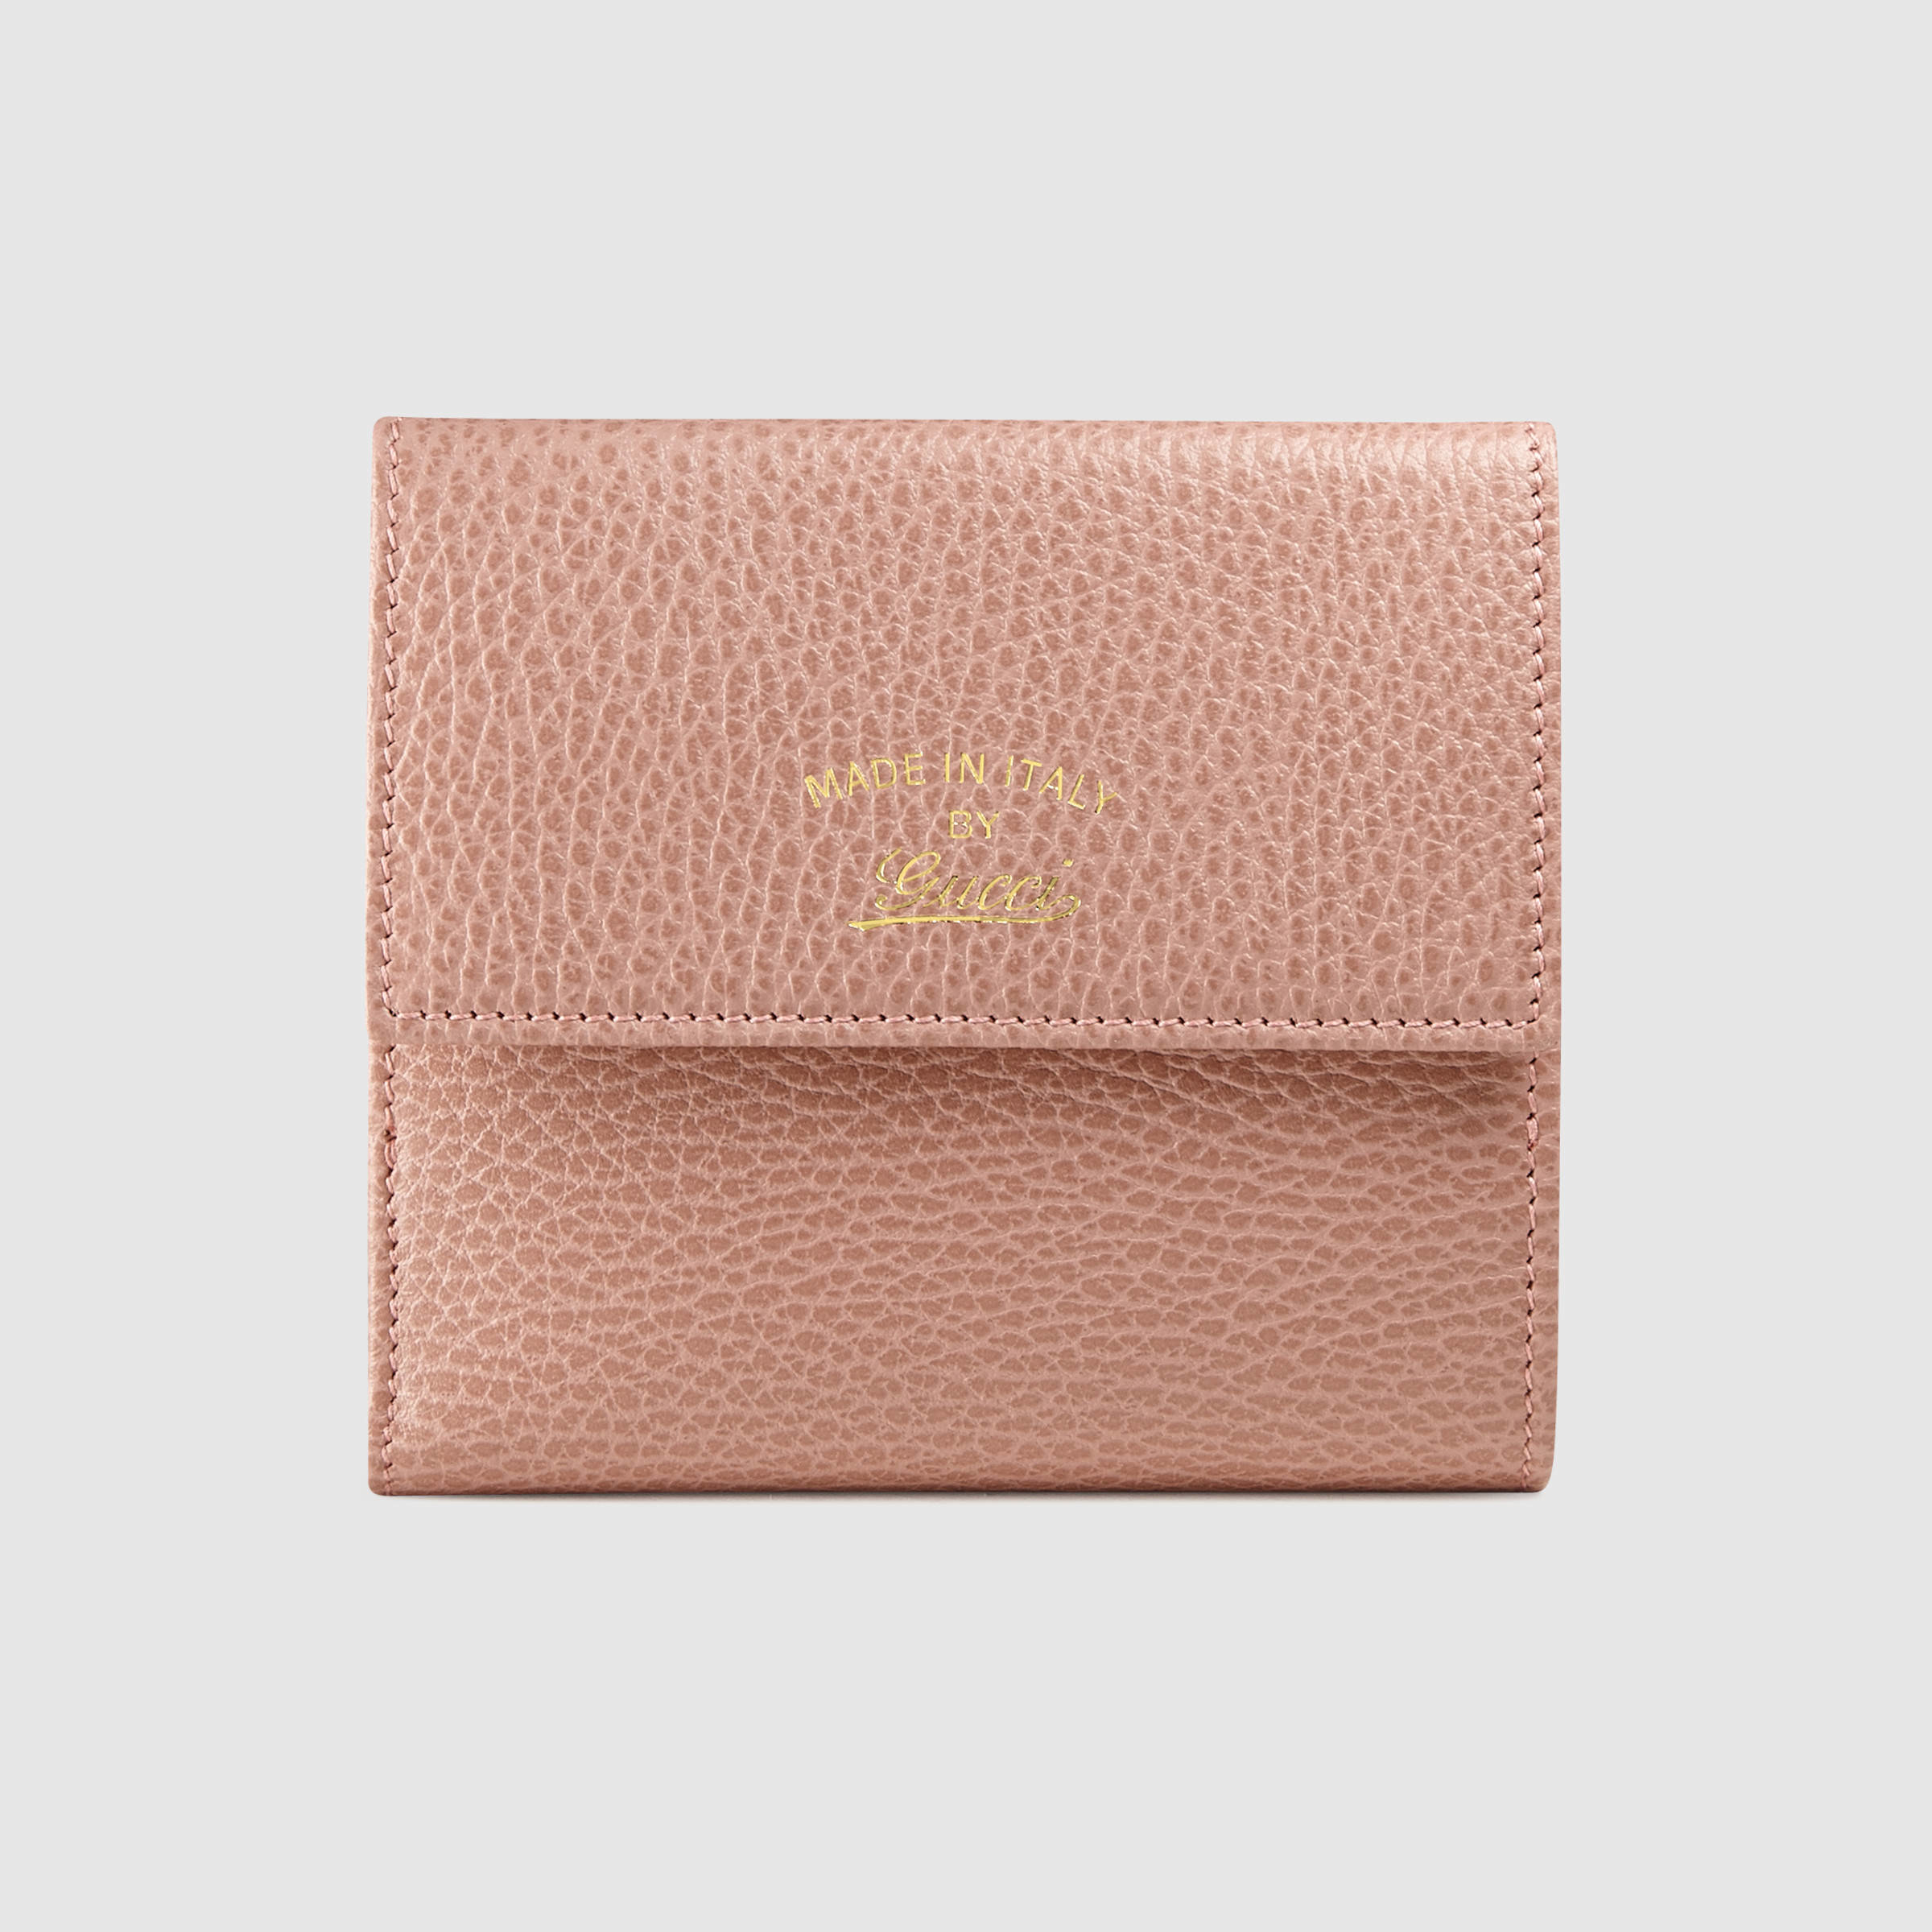 58cdef7525a5 Lyst - Gucci Swing French Flap Wallet in Pink